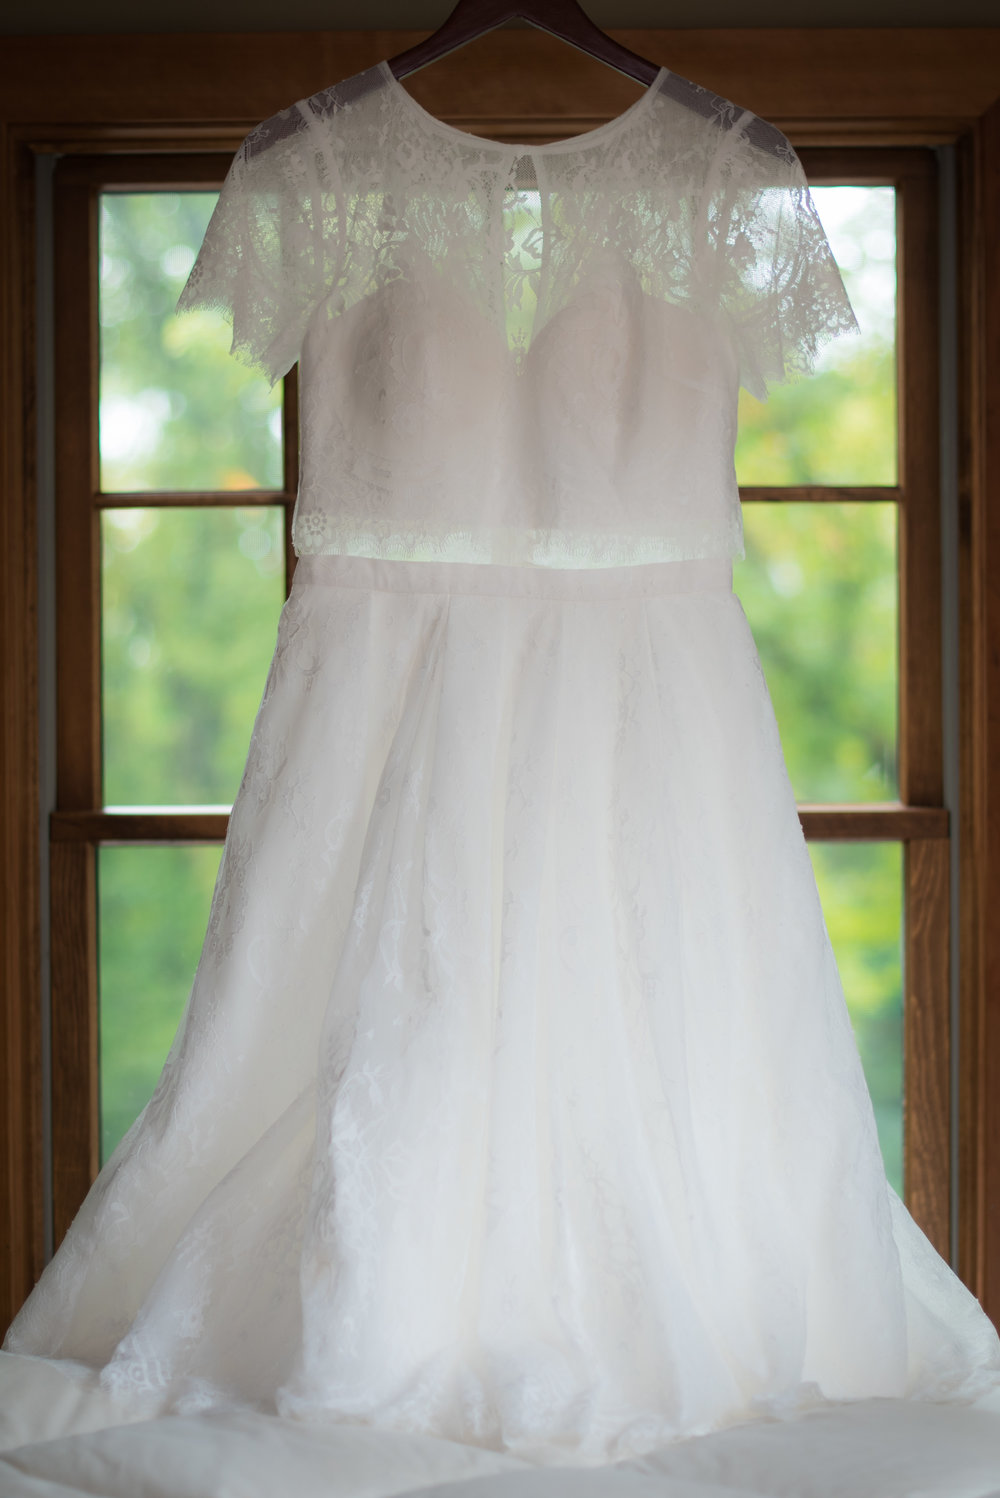 two piece wedding dress hanging in the window // Backyard Wedding in Northfield, MN :: Elliot Malcom Photography :: Megan + Andrew :: Apres Tent Rental :: GastroTruck Catering :: Sixpence Events & Planning .jpg